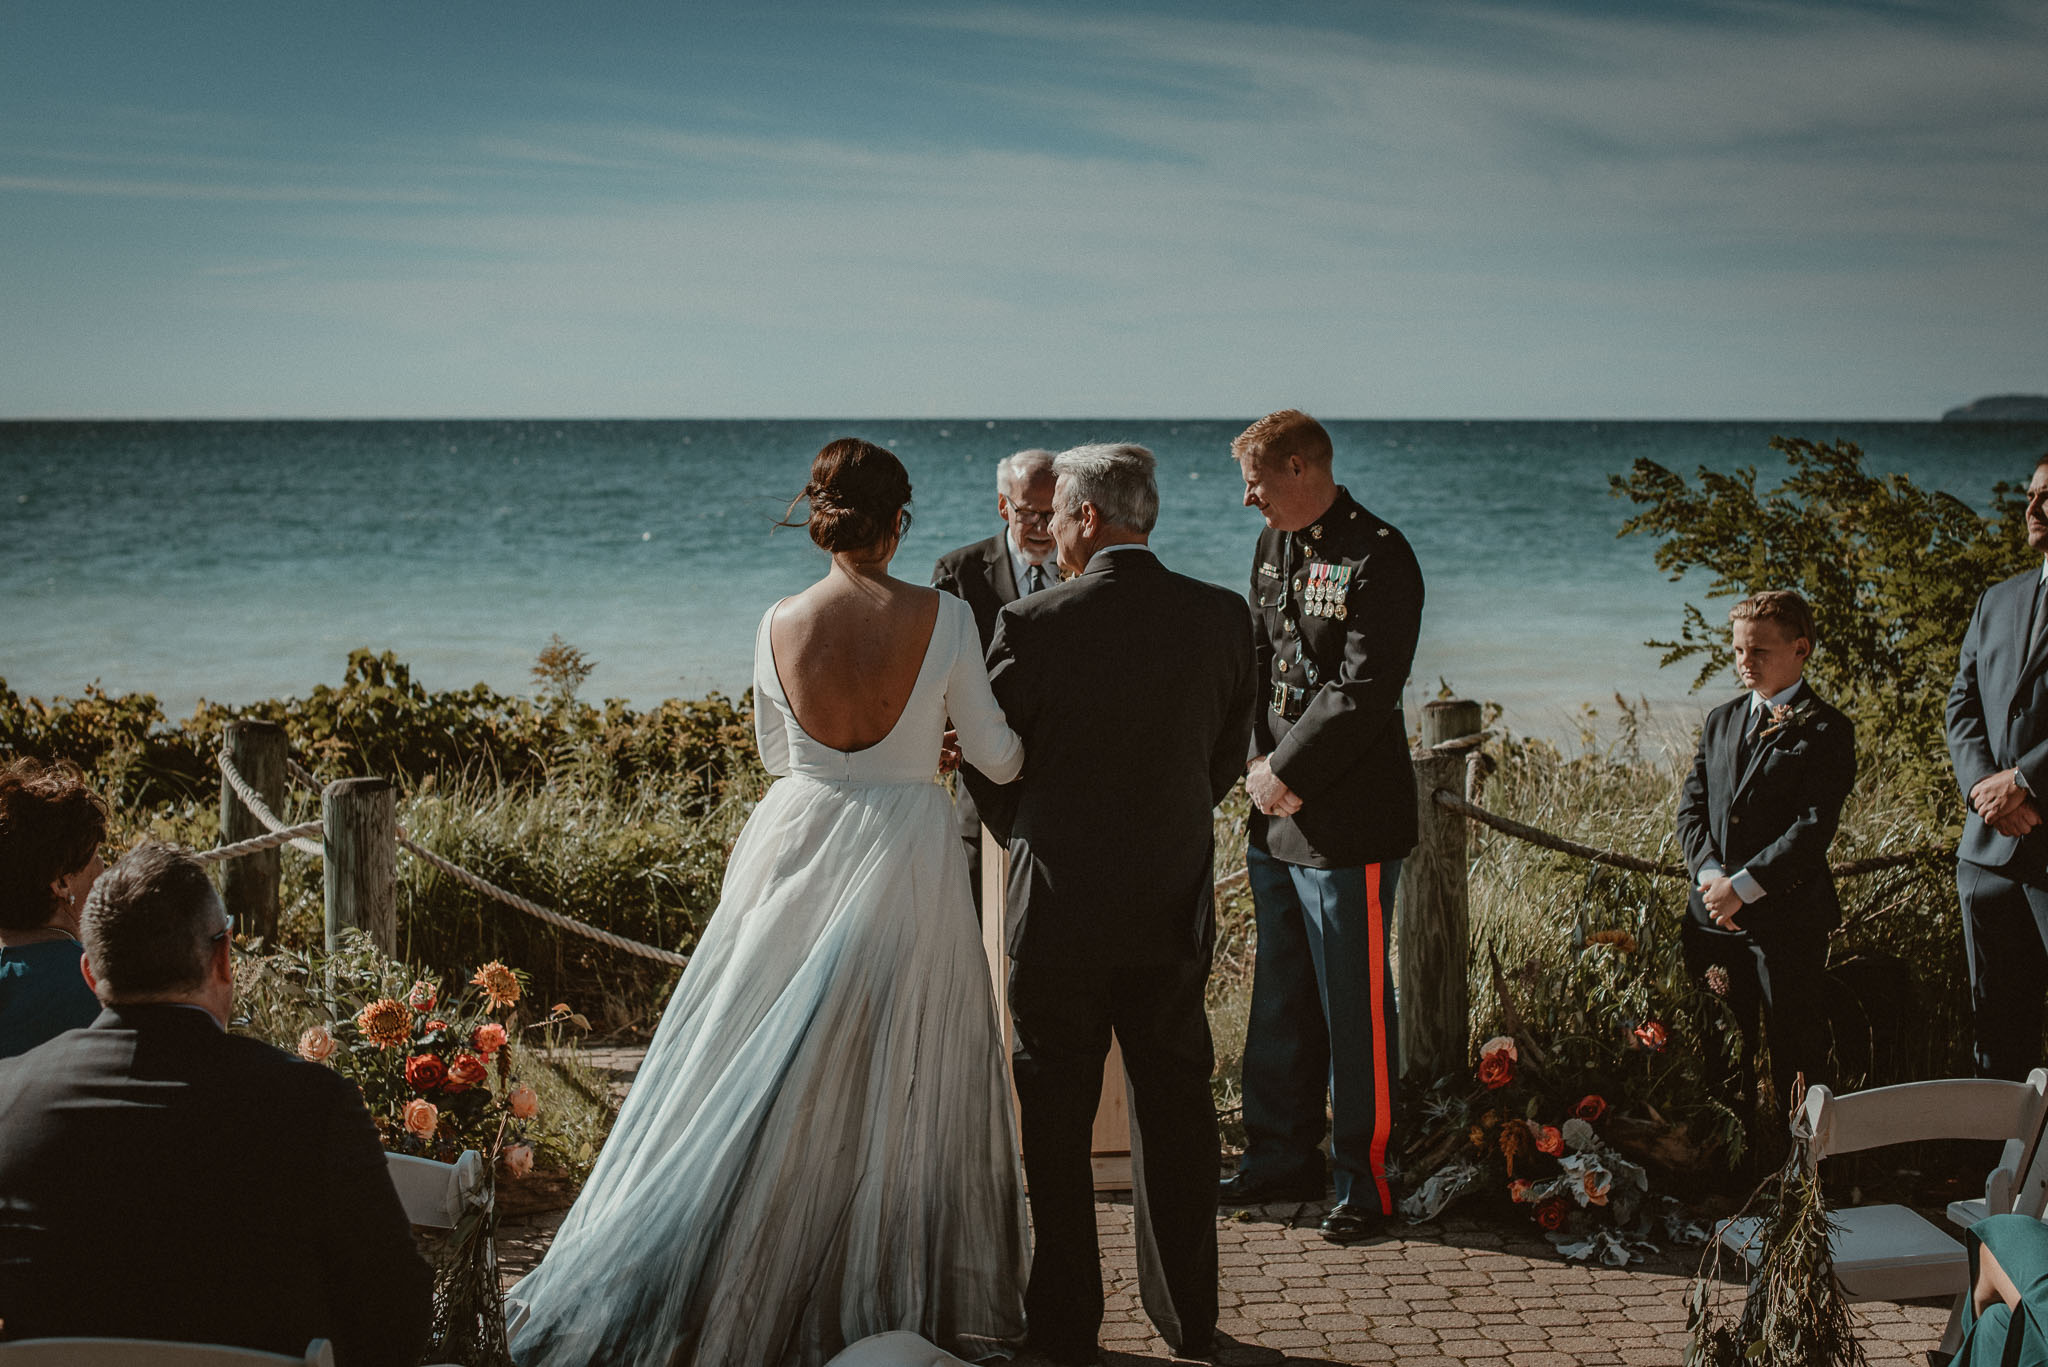 The father of the bride giving her arm to his daughters future husband.